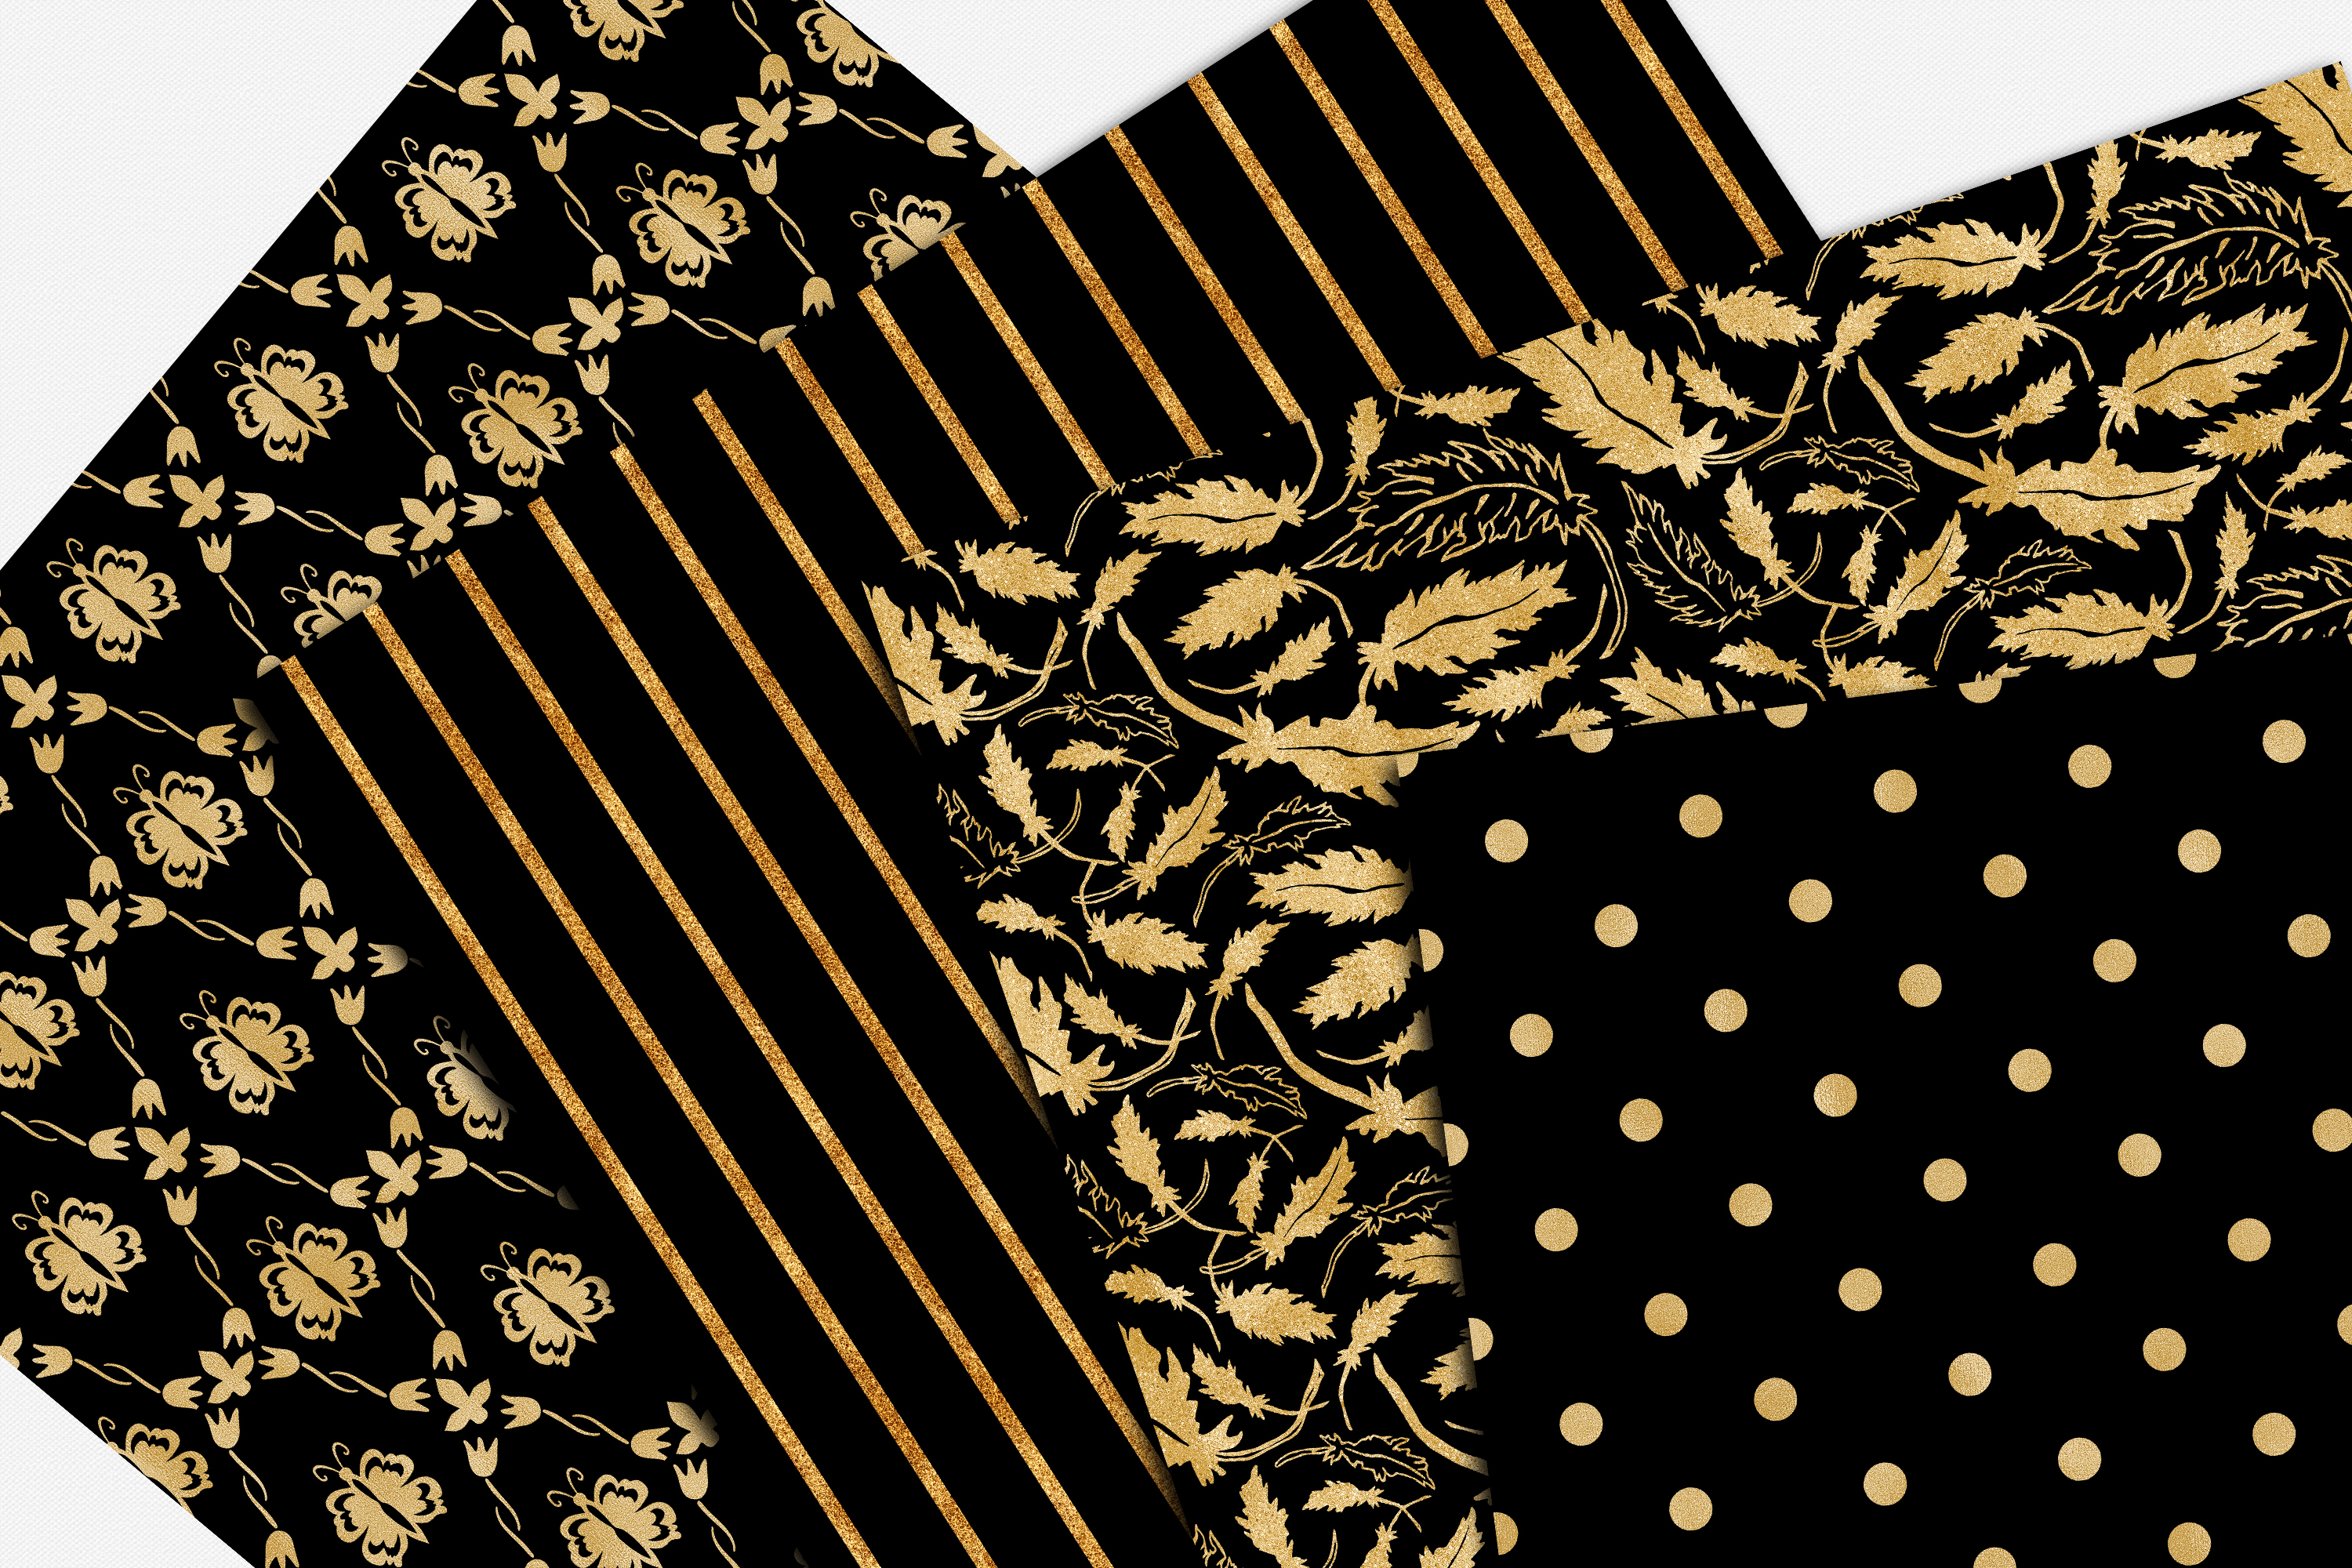 Black and Gold Seamless Papers - Damask & Geometric Patterns example image 4